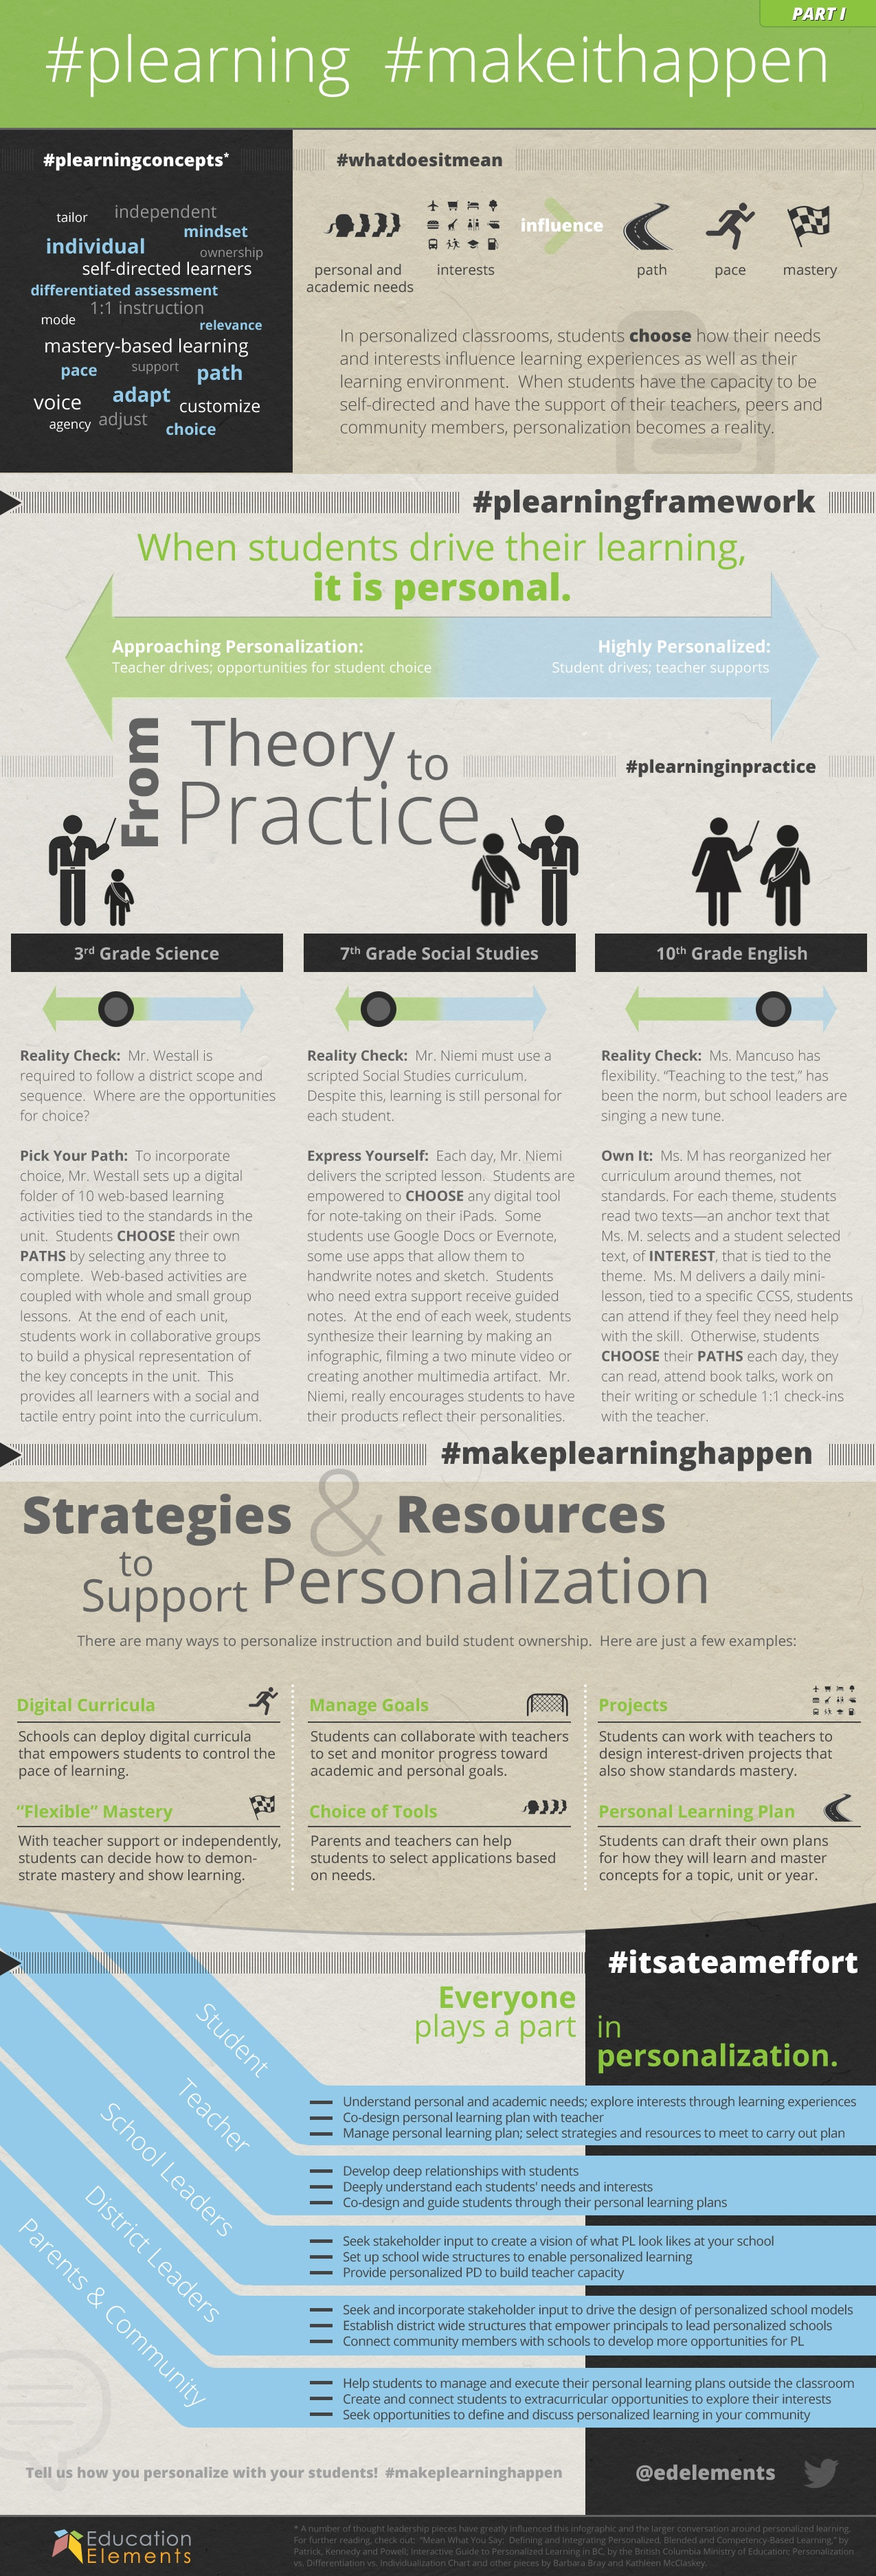 Making Personalized Learning Happen infographic